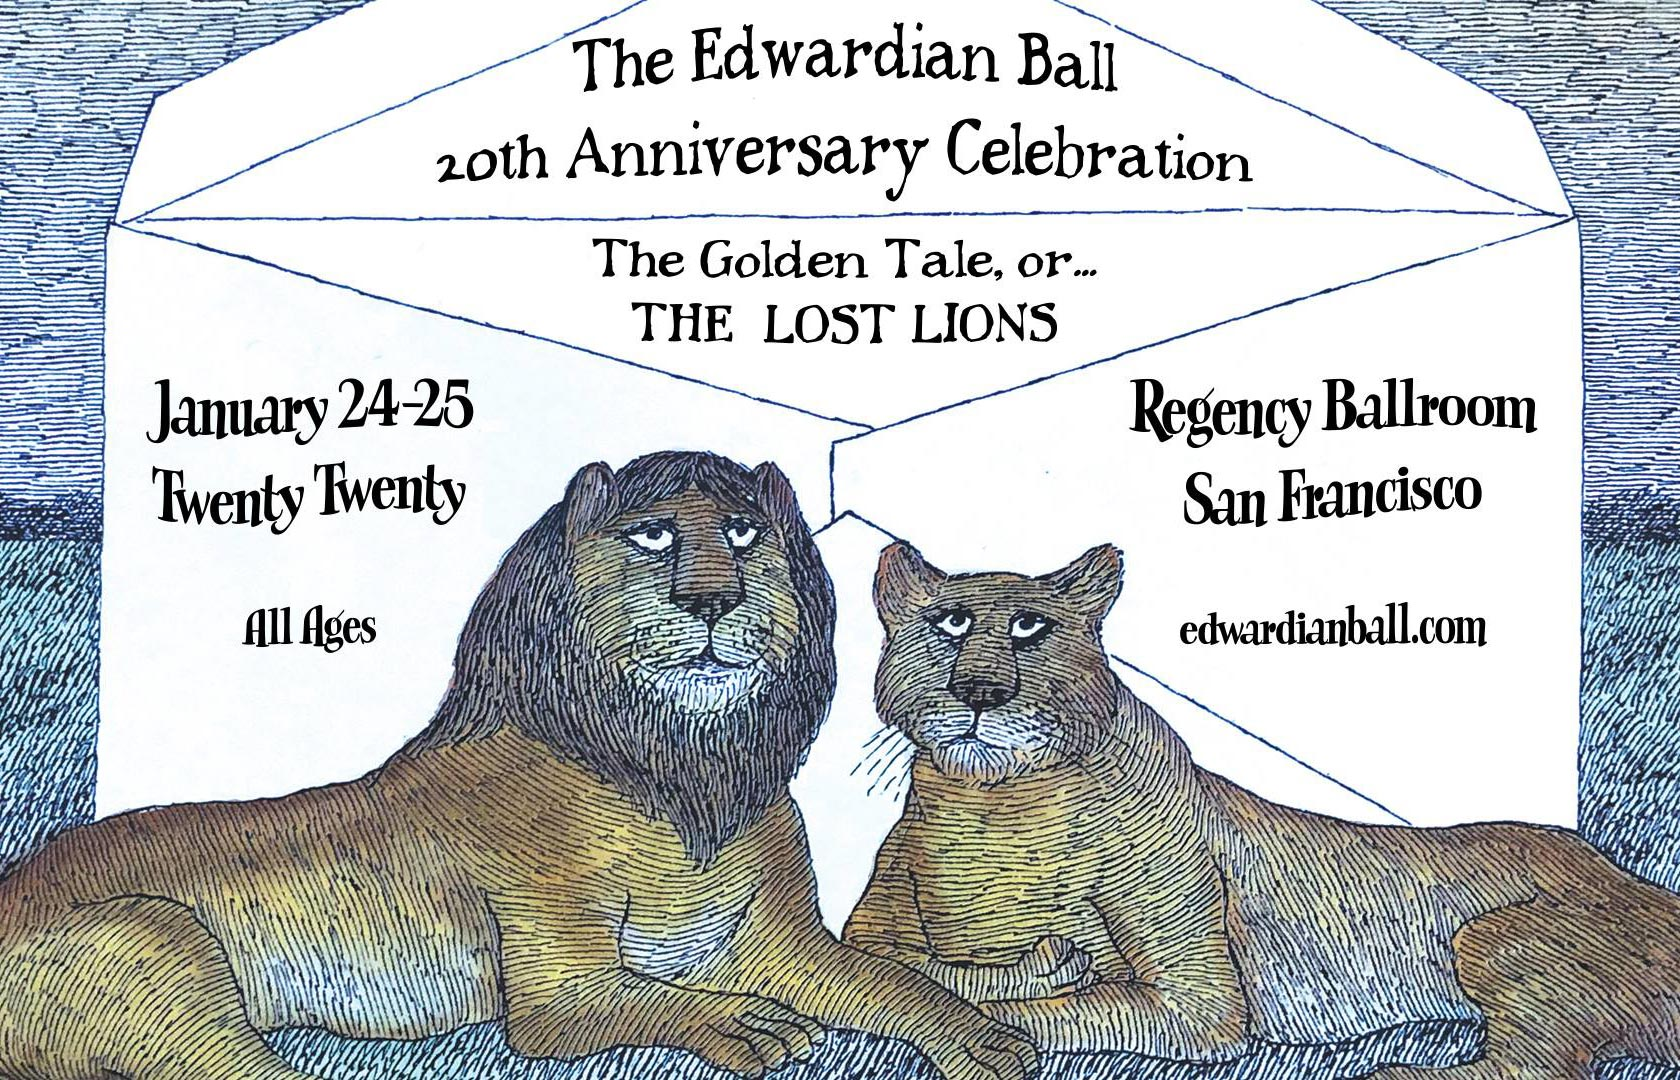 The Edwardian Ball - 20th Anniversary Celebration - January 24-25, 2019 - Regency Ballroom in San Francisco